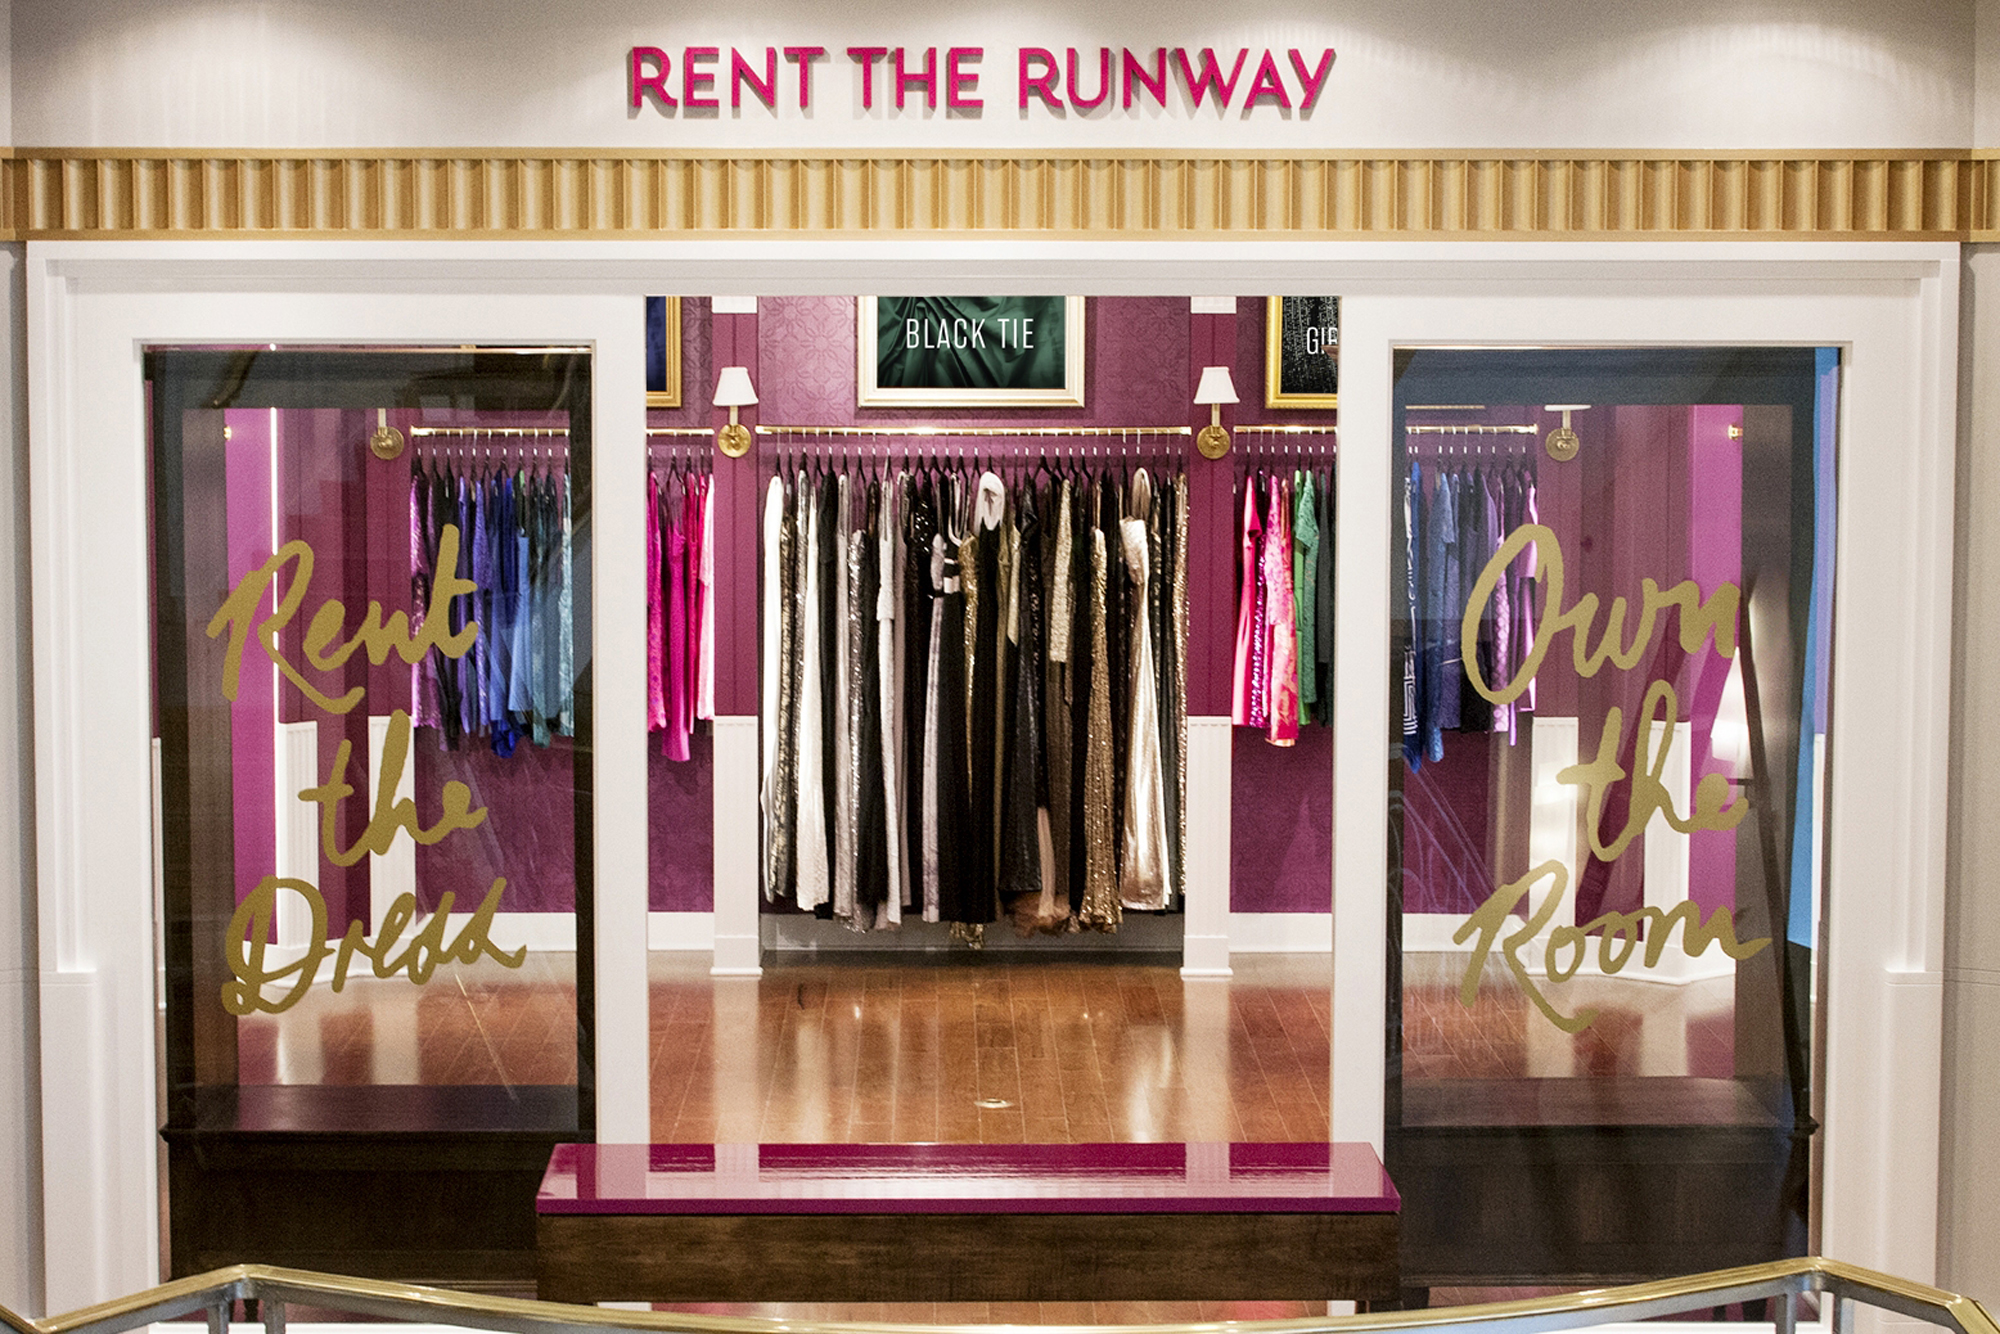 rent the runway shot - Rental fashion